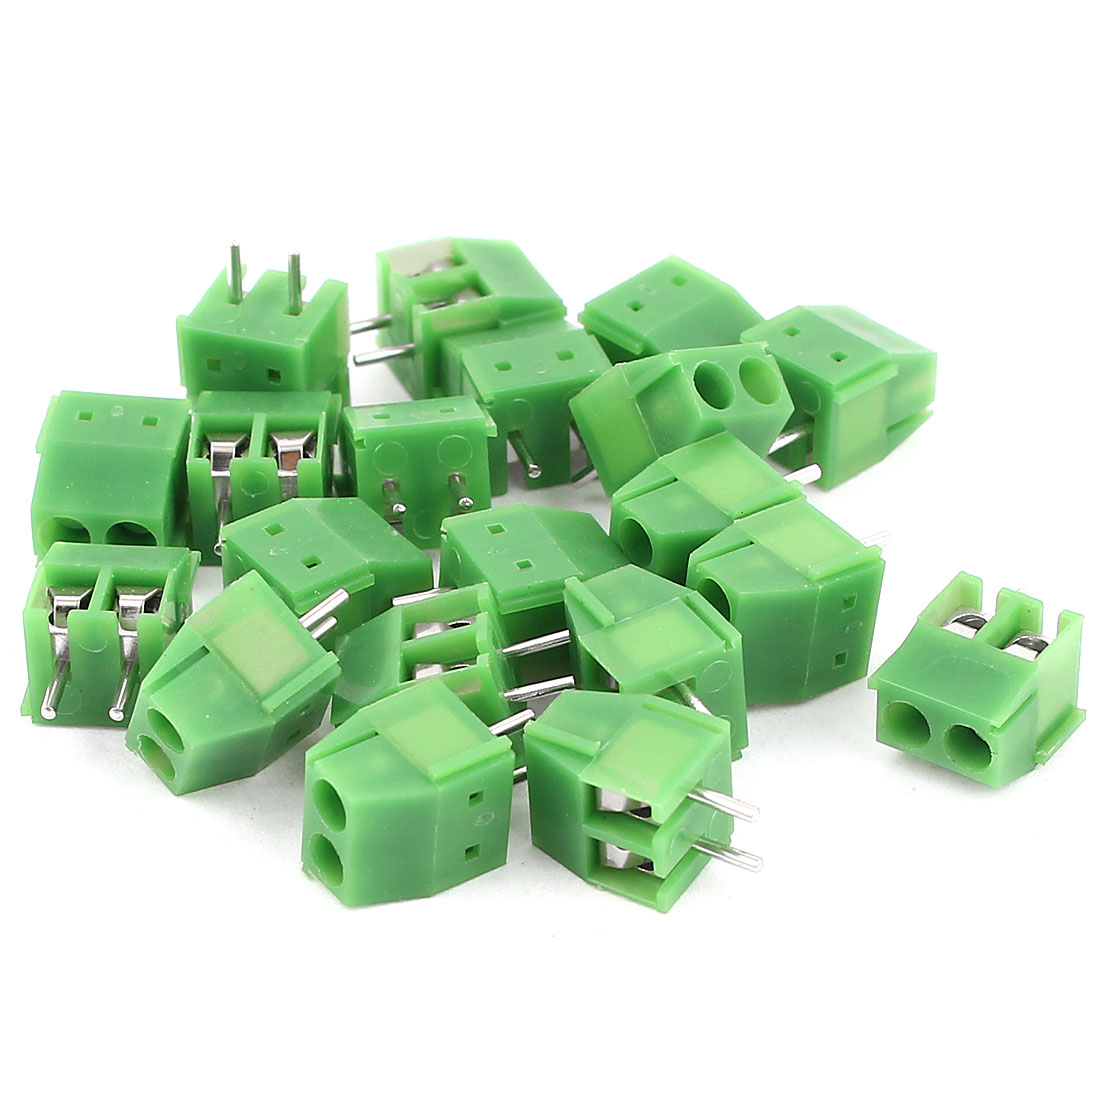 20 Pcs 3.5mm Pitch 2Pin Pluggable Type PCB Mount Screw Terminal Block Connectors